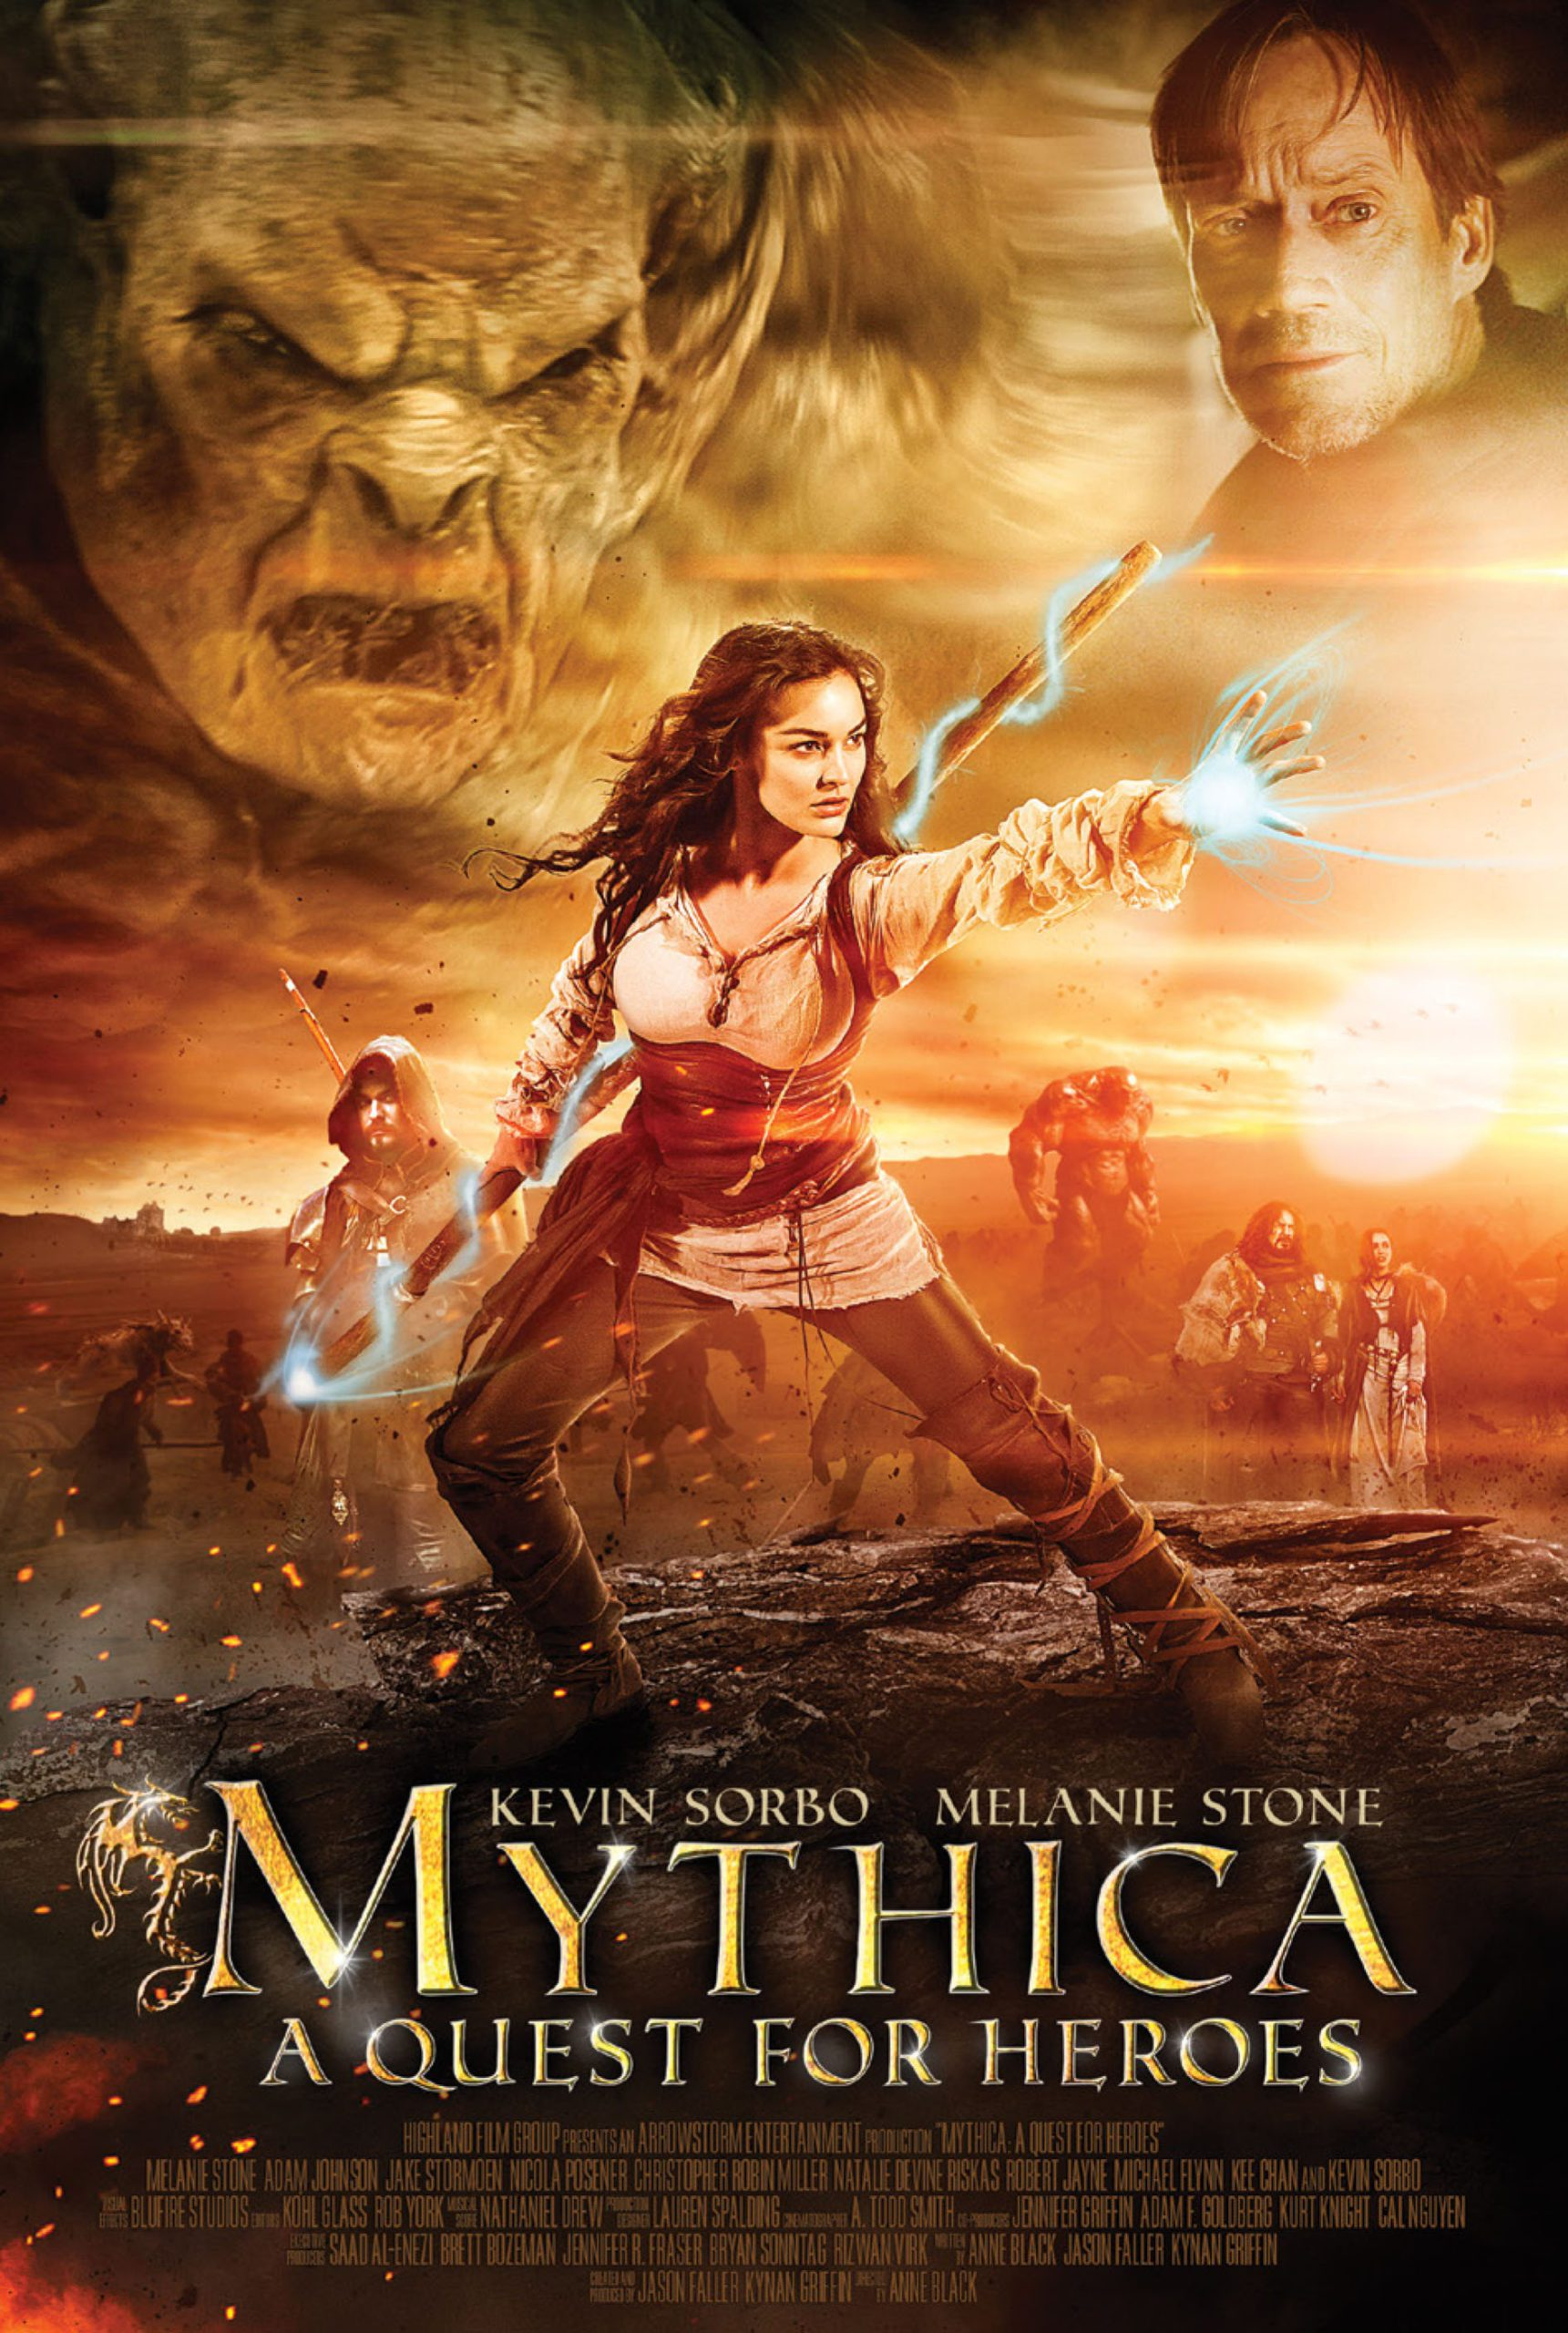 Mythica A Quest for Heros